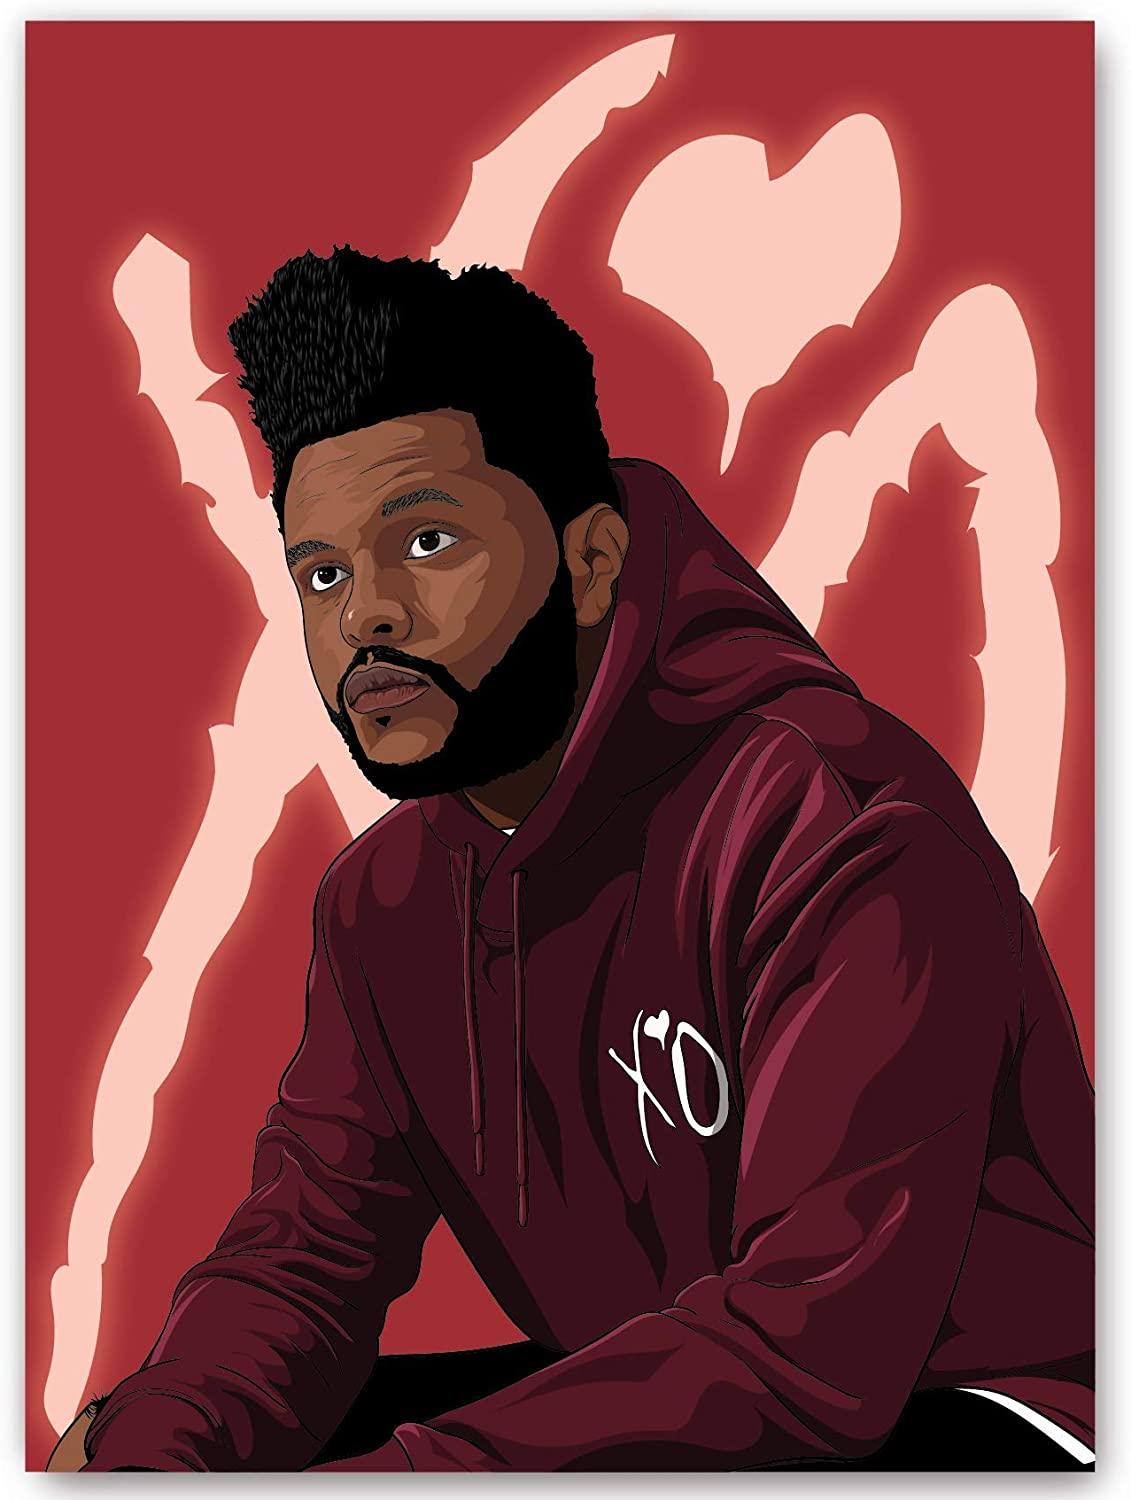 The W.e.e.k.n.d XO Starboy Wall Art Poster Print Full Color Matte Finish Home Decor (22x16 Inches)